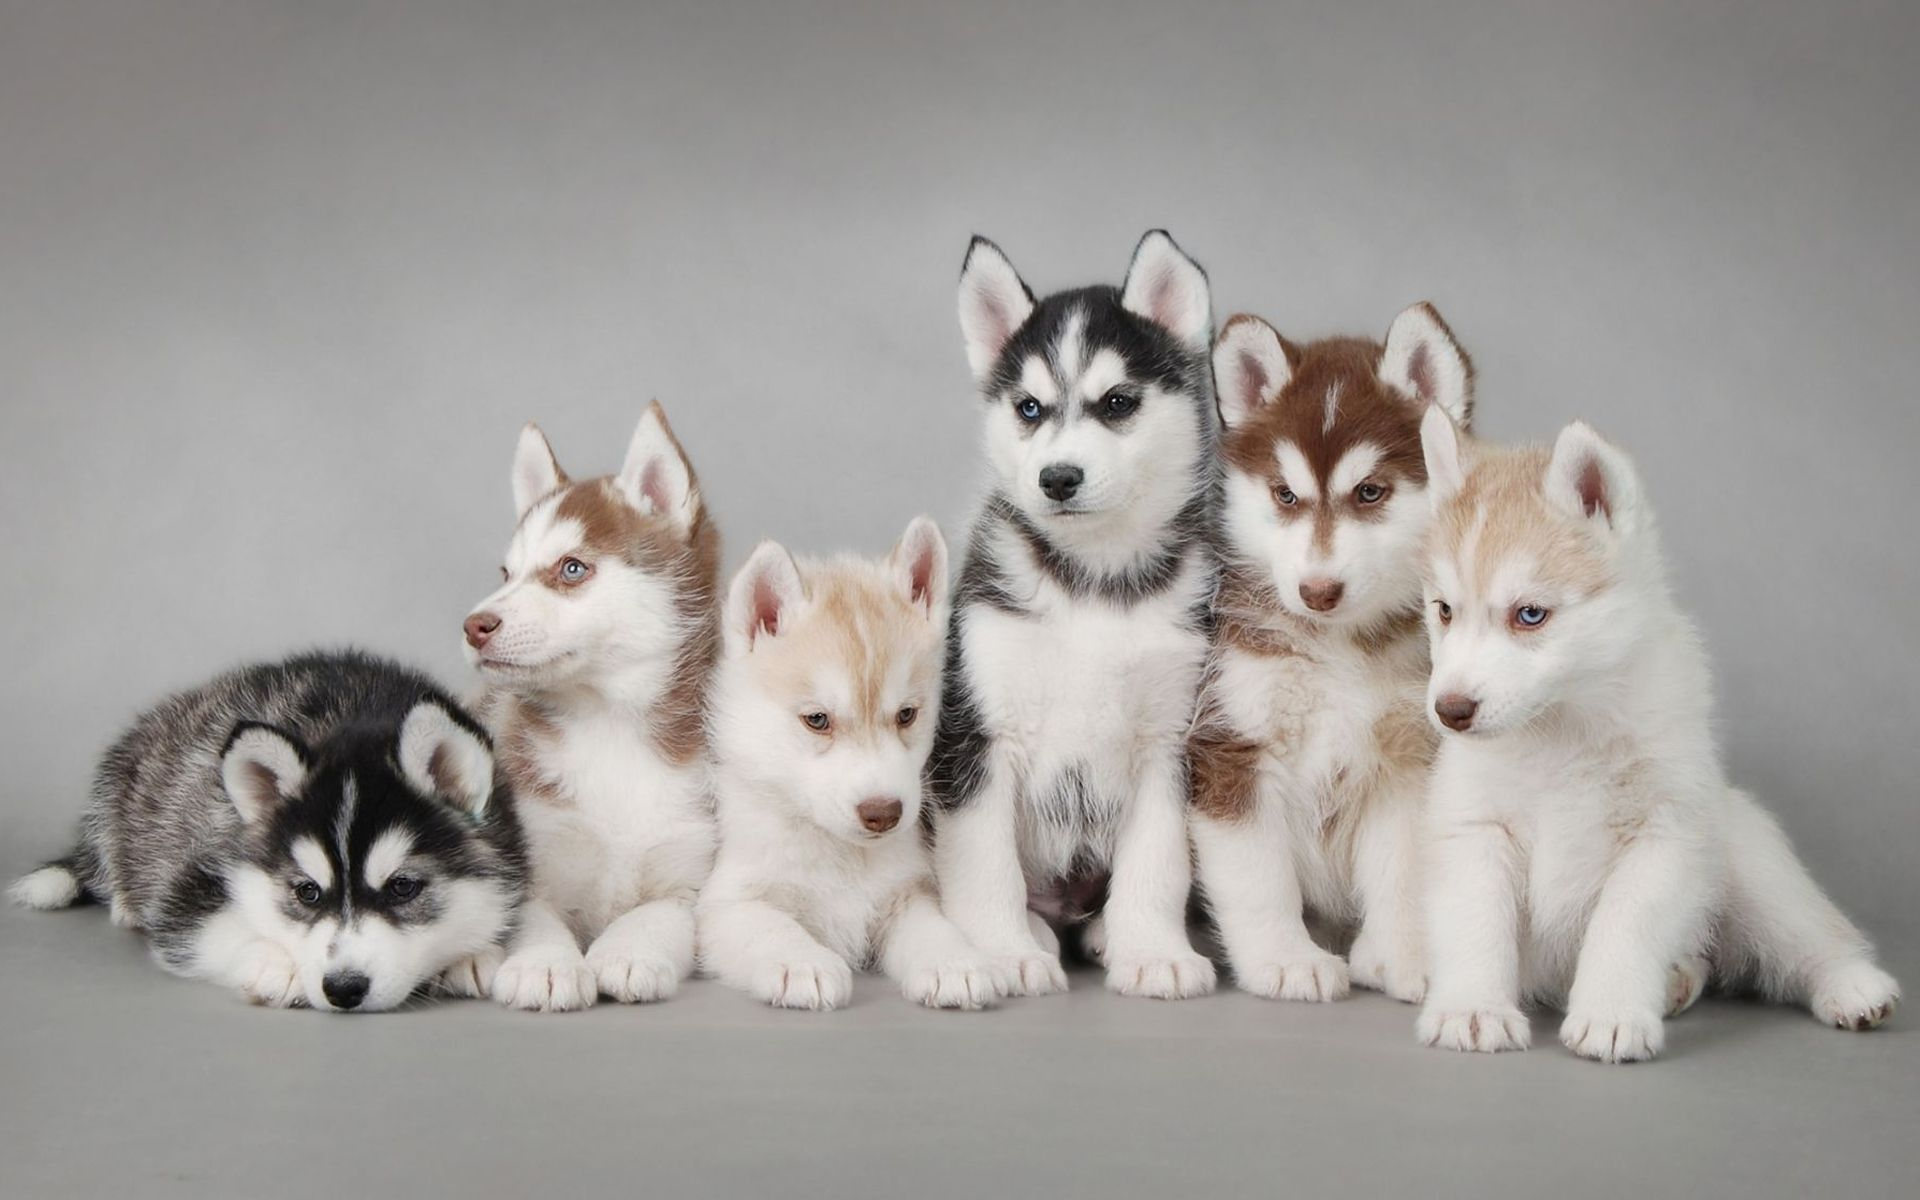 Siberian Huskies Come In A Variety Of Colors And Patterns The